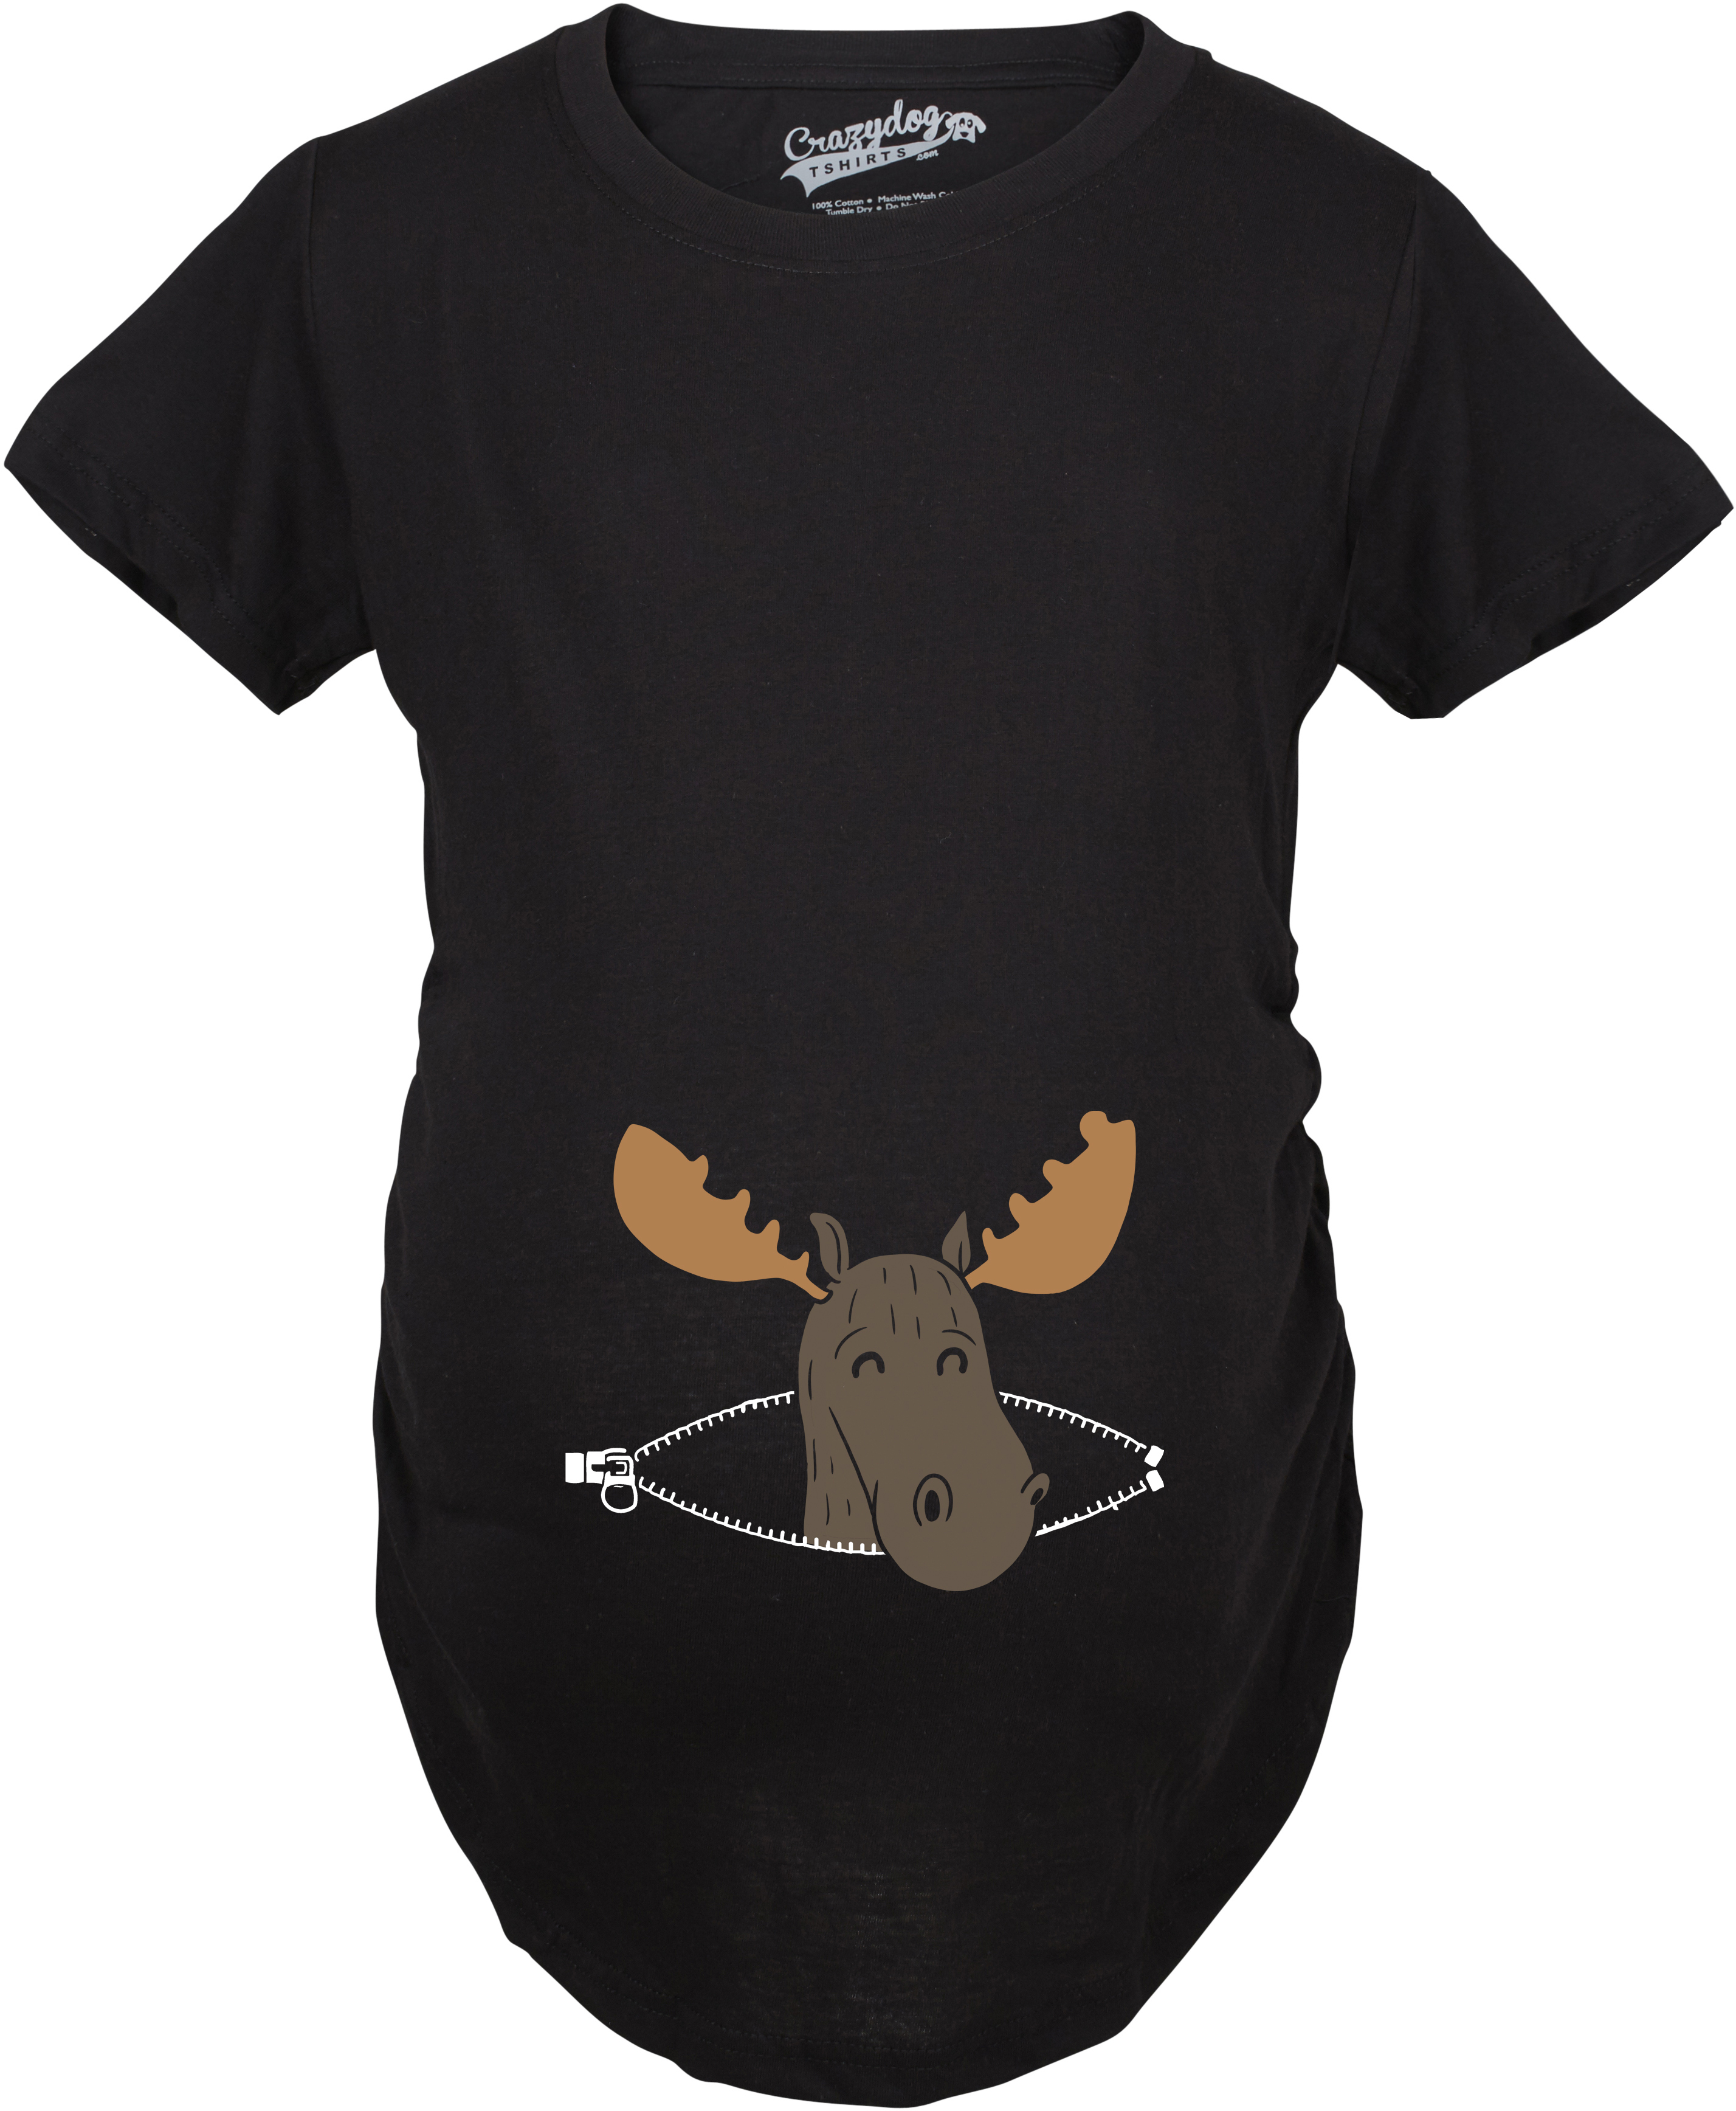 Crazy Dog TShirts - Maternity Peeking Moose Announcement Funny Pregnancy Gift T shirt